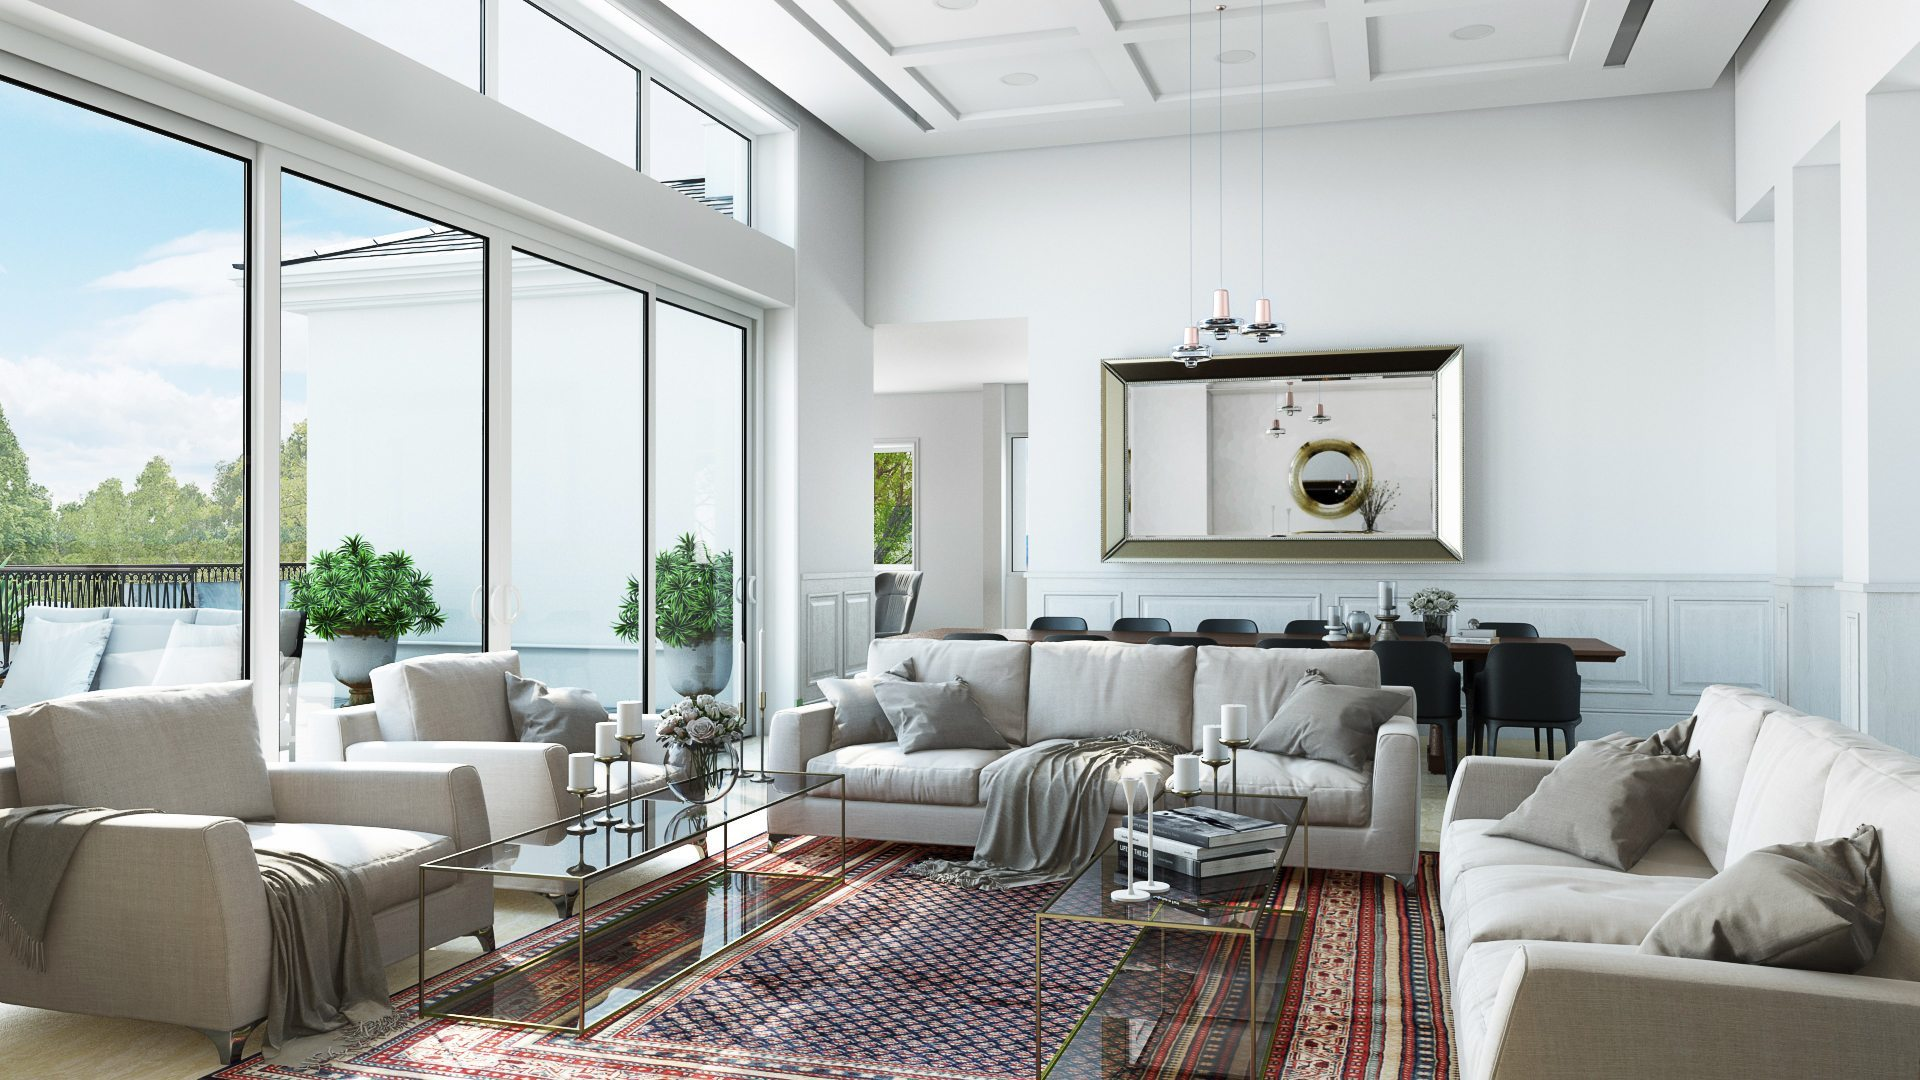 Living Room Rendering 10 Interiors Visualized By Archicgi